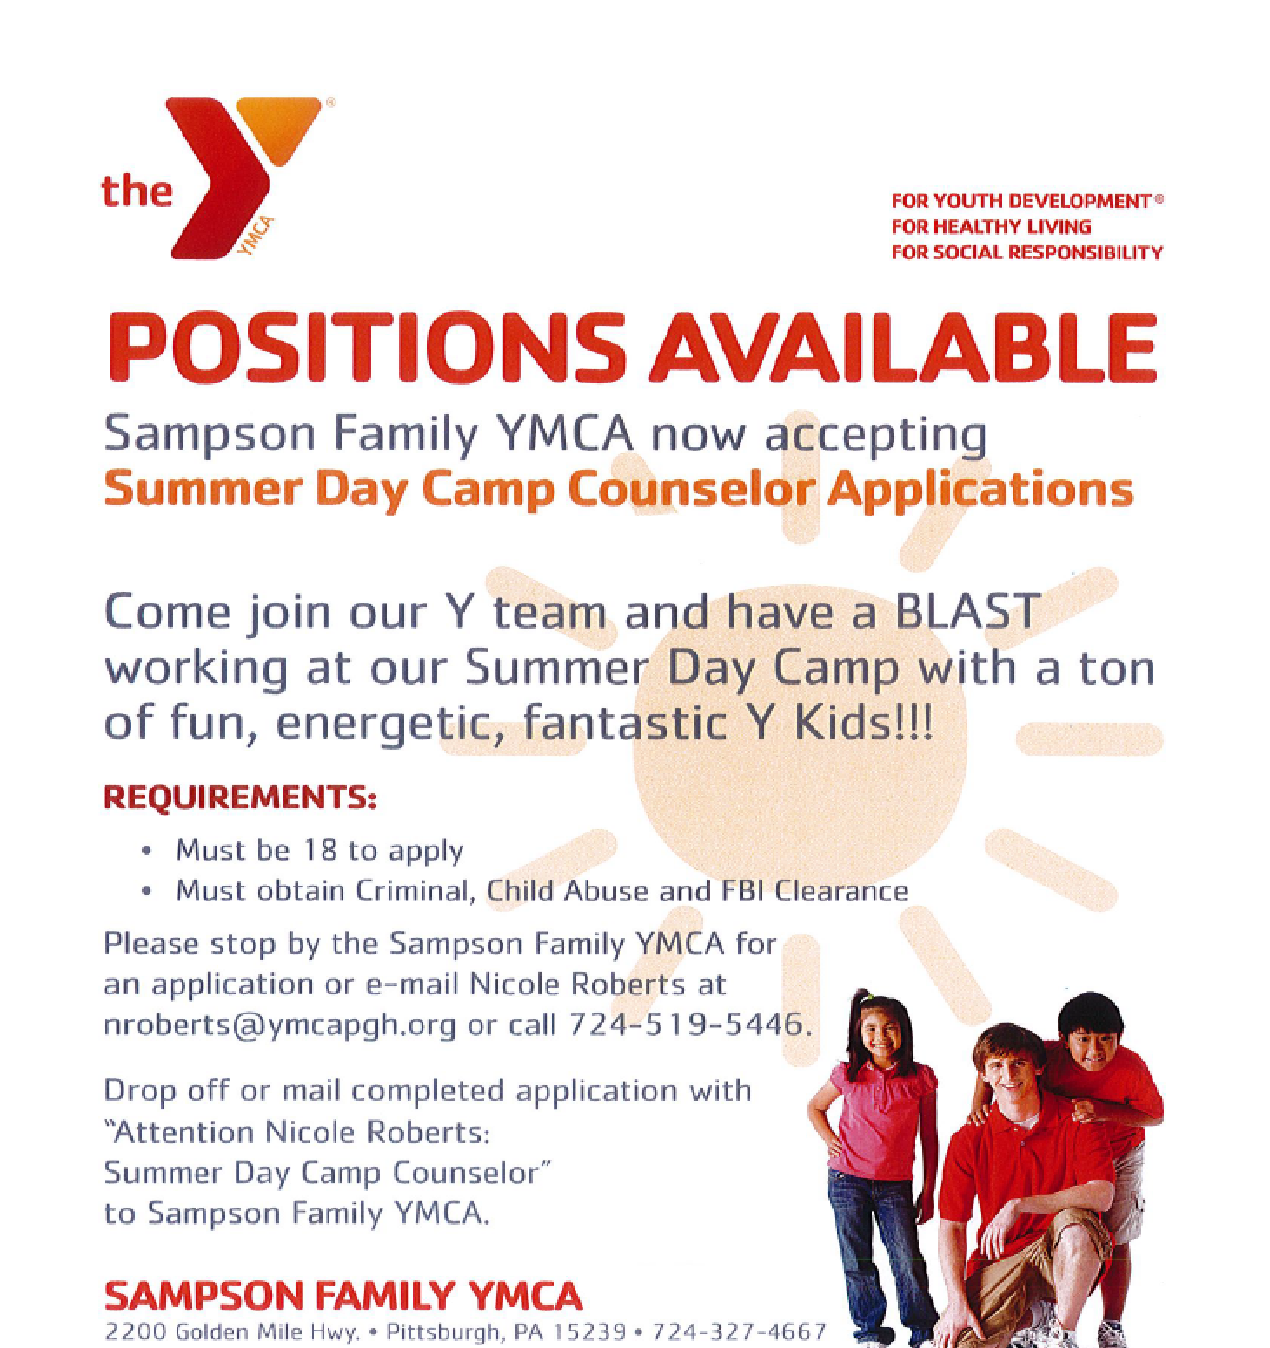 Ymca Youth Camps: The PSNK Work Bench